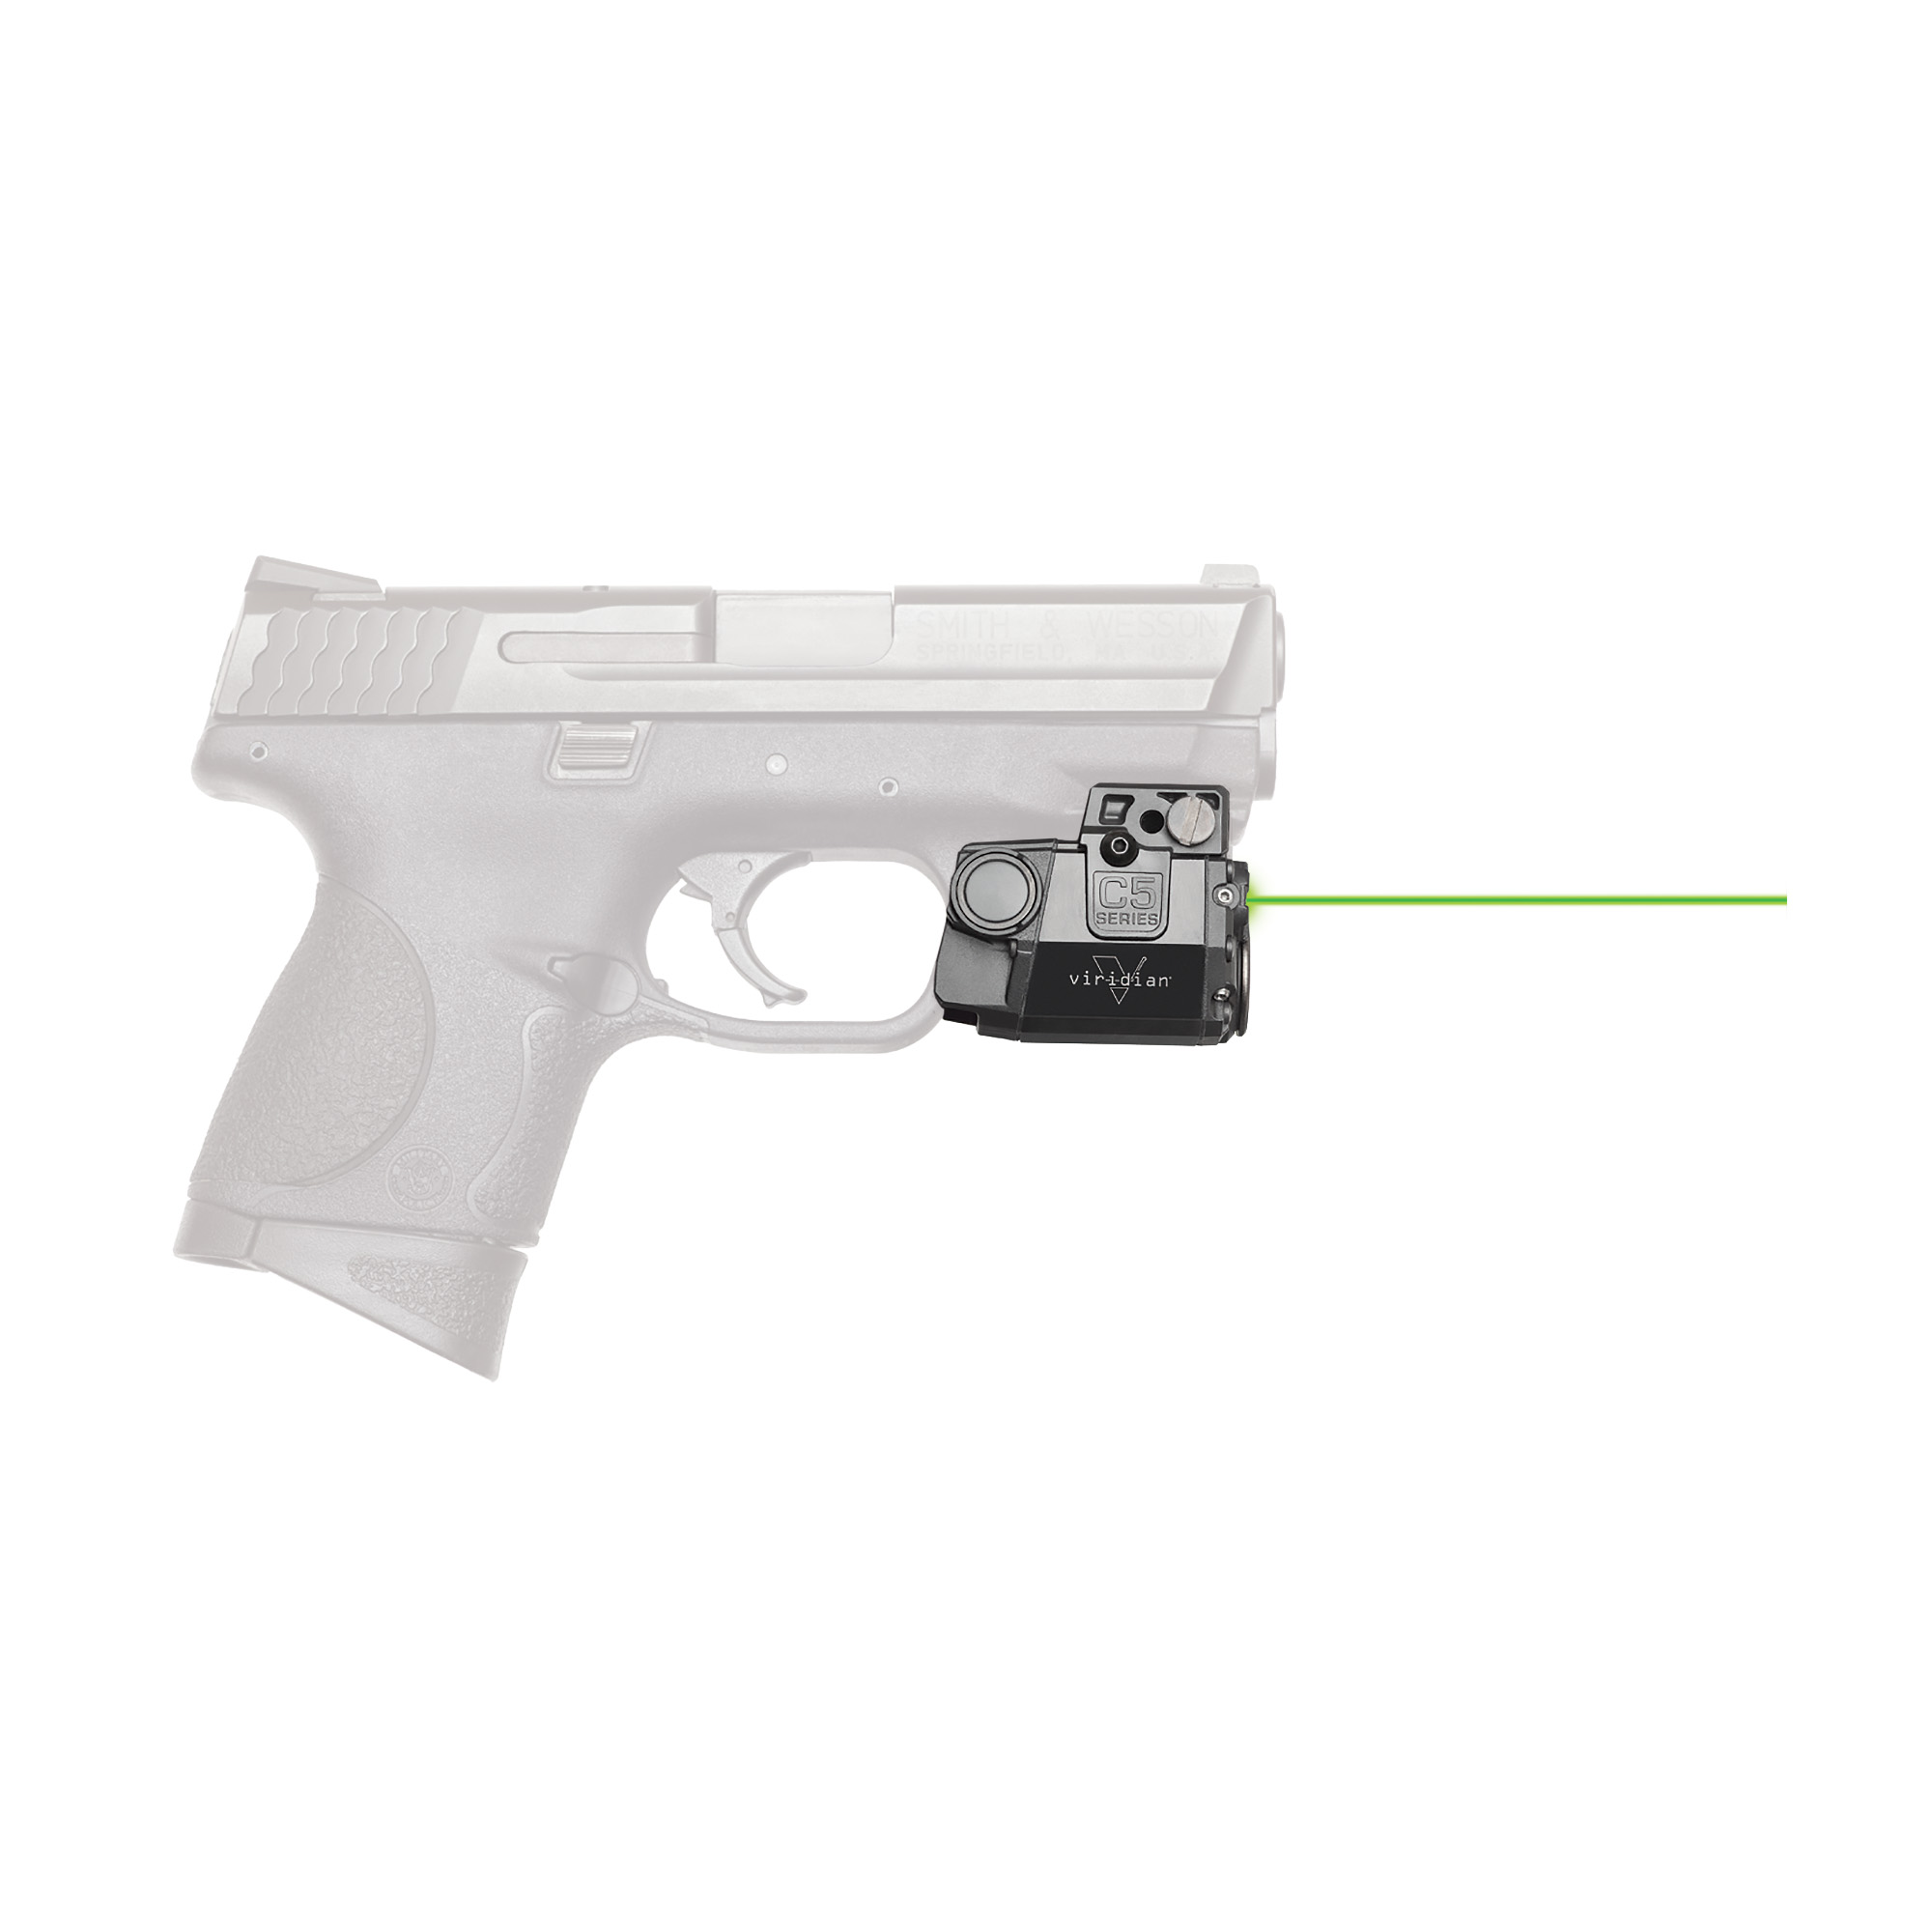 "The Viridian C5 green laser sight is so tiny"" it tucks neatly between trigger guard and muzzle"" with no overhang"" and will work with virtually any railed gun including subcompacts. This C5L features a green laser (50 x brighter than traditional red) that is visible in day or night with multiple modes of operation and easy windage/elevation adjustment. Viridian's C5 laser sight is equipped with INSTANT-ON(R) activation. When paired with a TacLoc holster (sold separately)"" you can ignite your green laser and tactical light instantly when you draw your weapon. When you draw it's on."